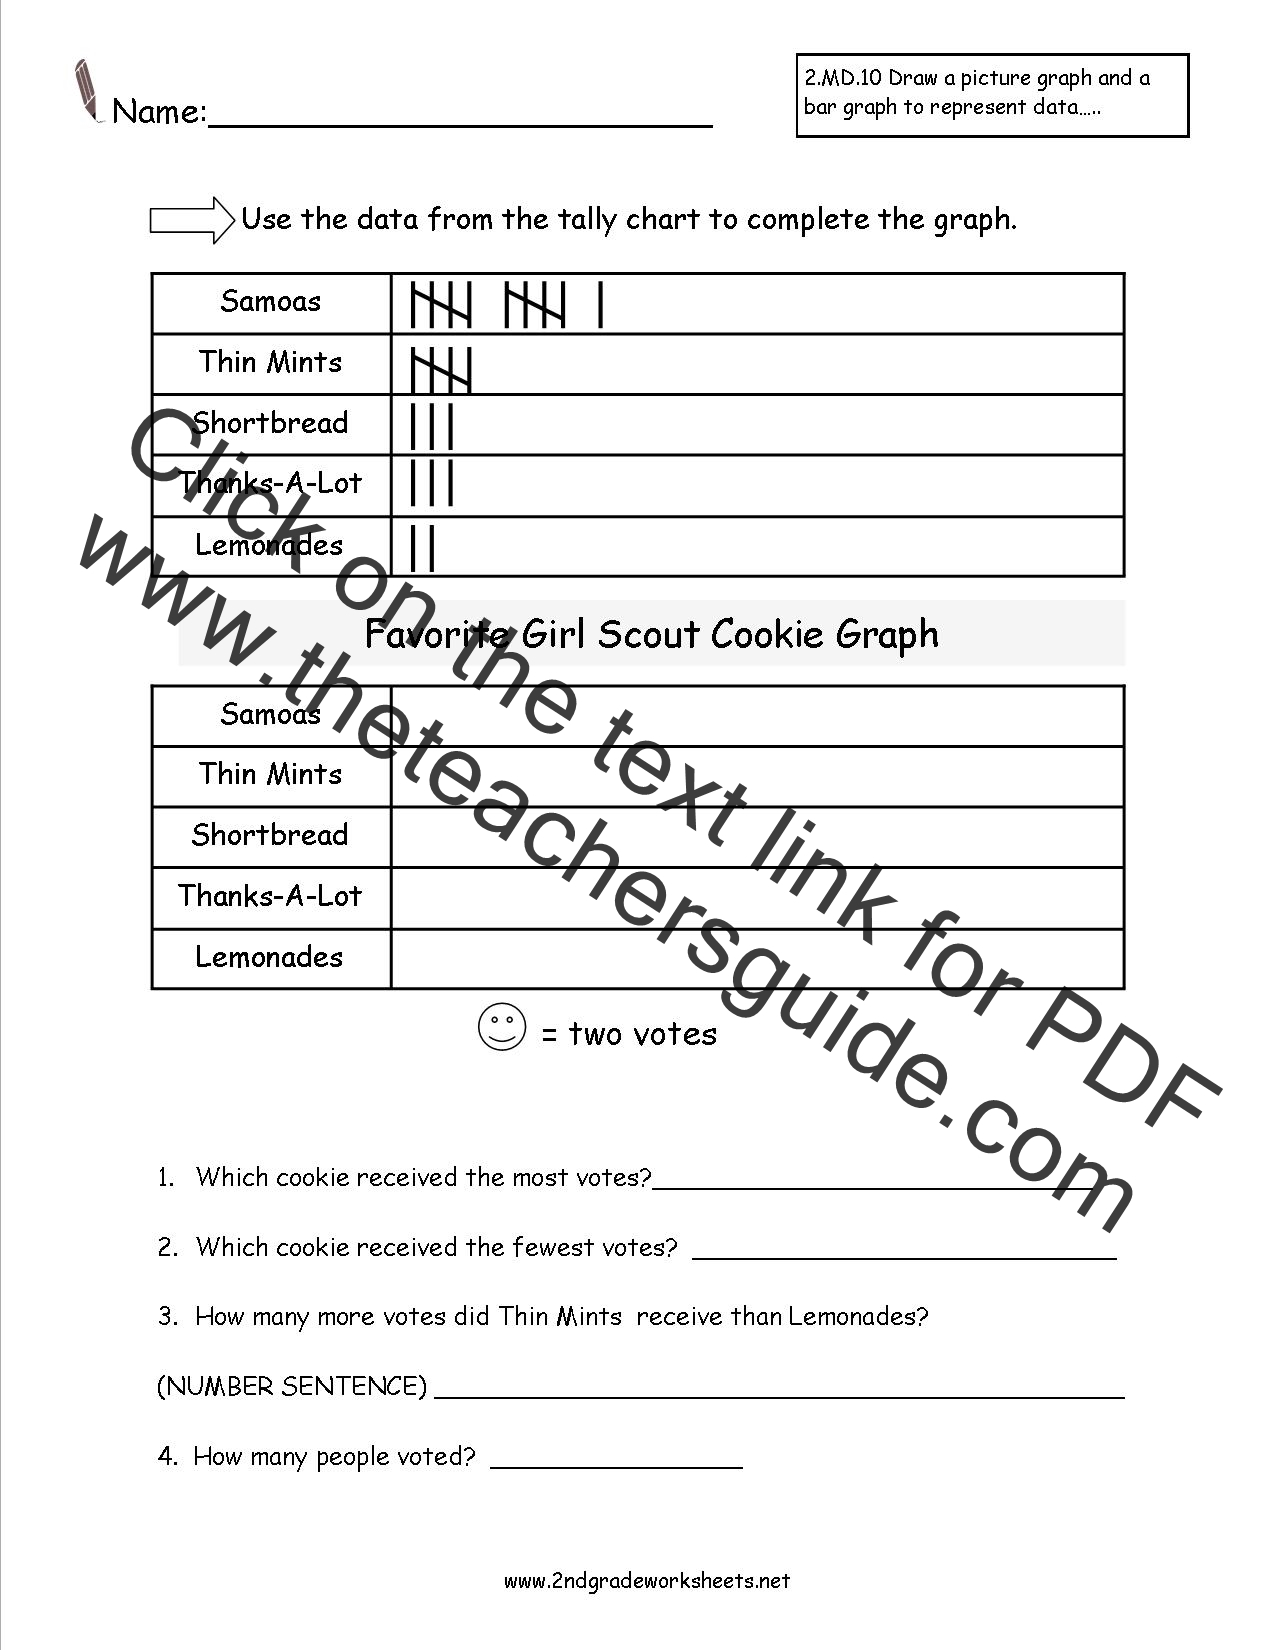 Worksheets 2st Grade Worksheets second grade reading and creating pictograph worksheets favorite girl scout cookie pictograph